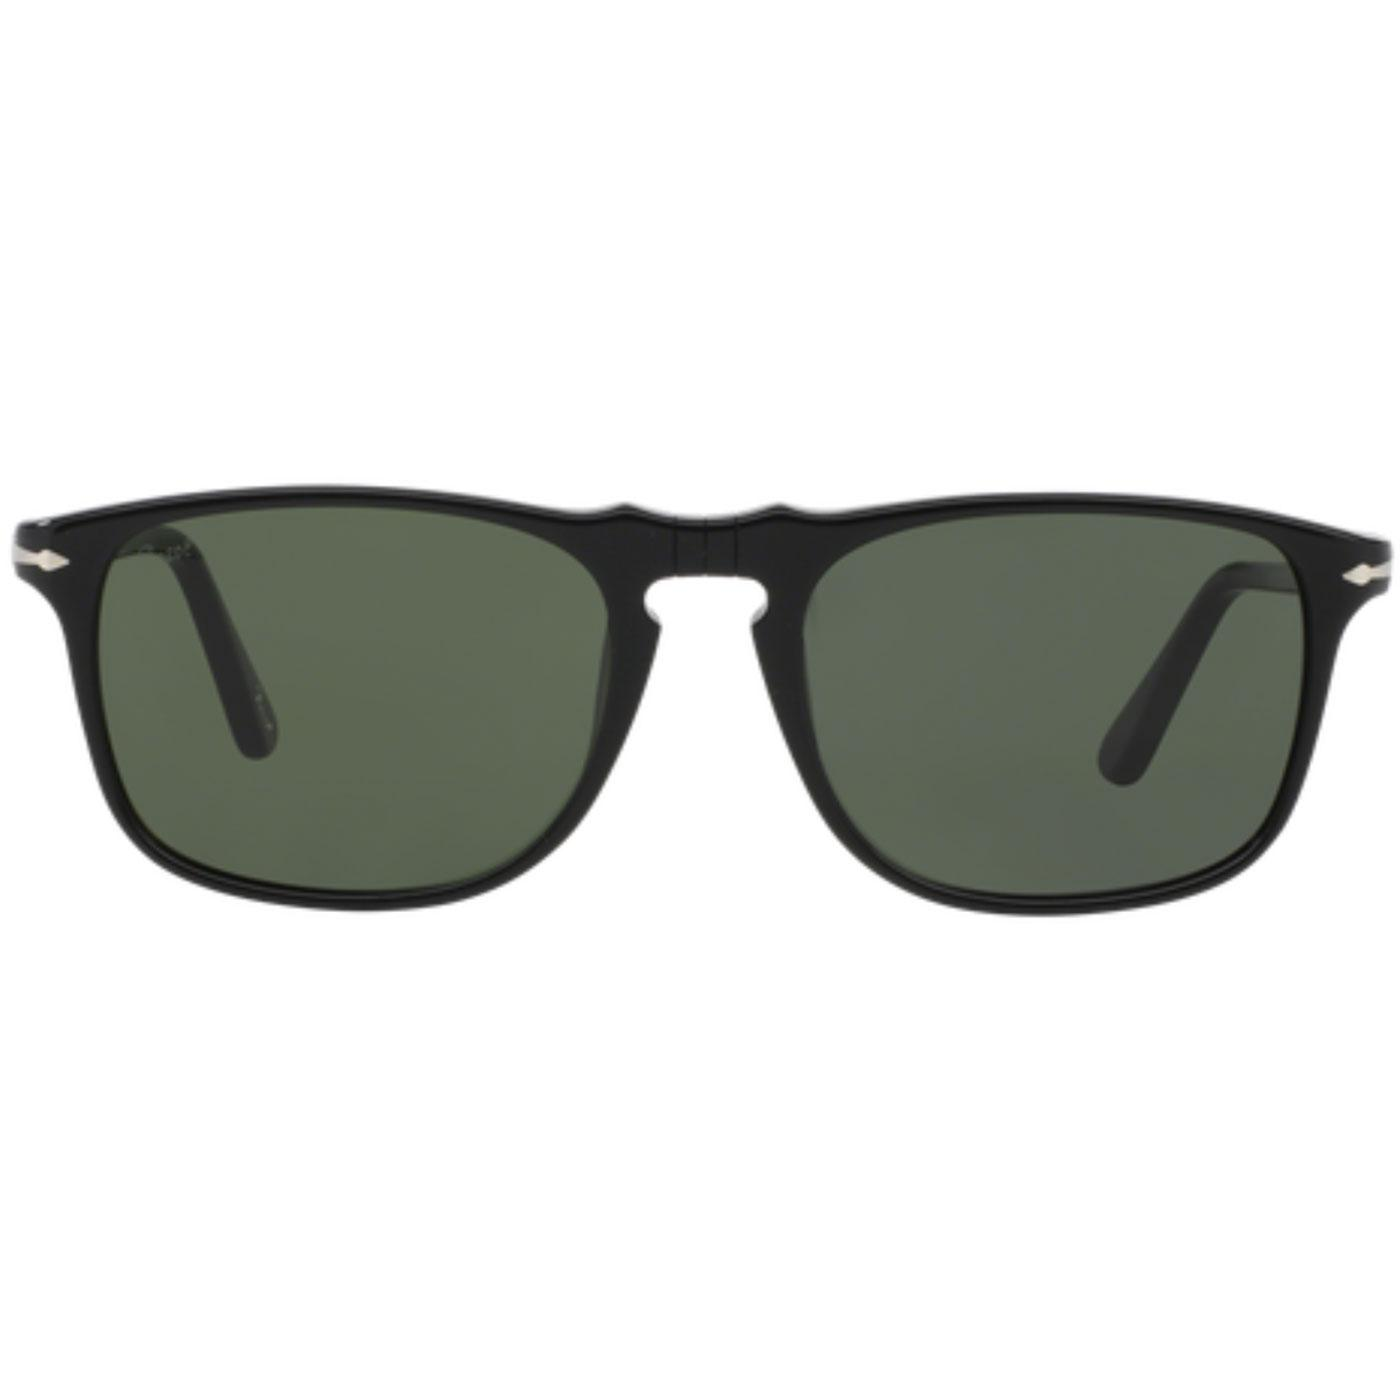 PERSOL Men's Retro 60s Squared Sunglasses Black